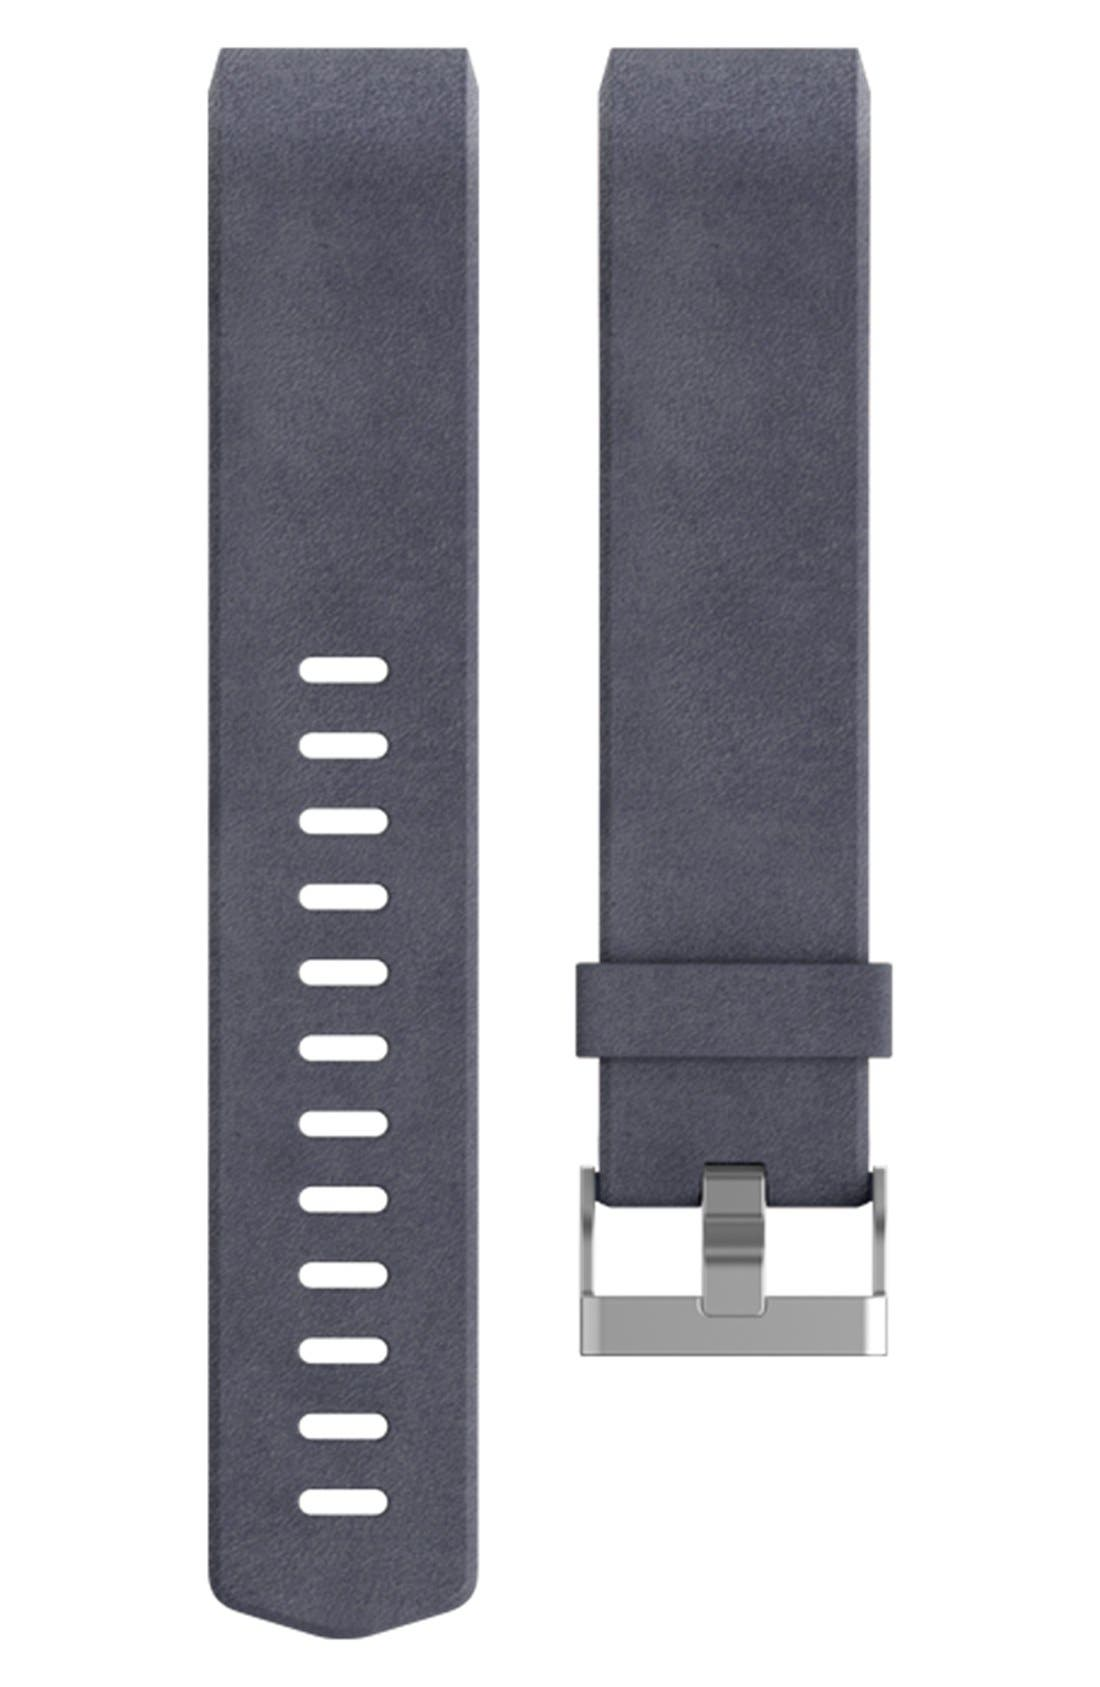 FITBIT Luxe Leather Charge 2 Large Leather Accessory Band in Navy